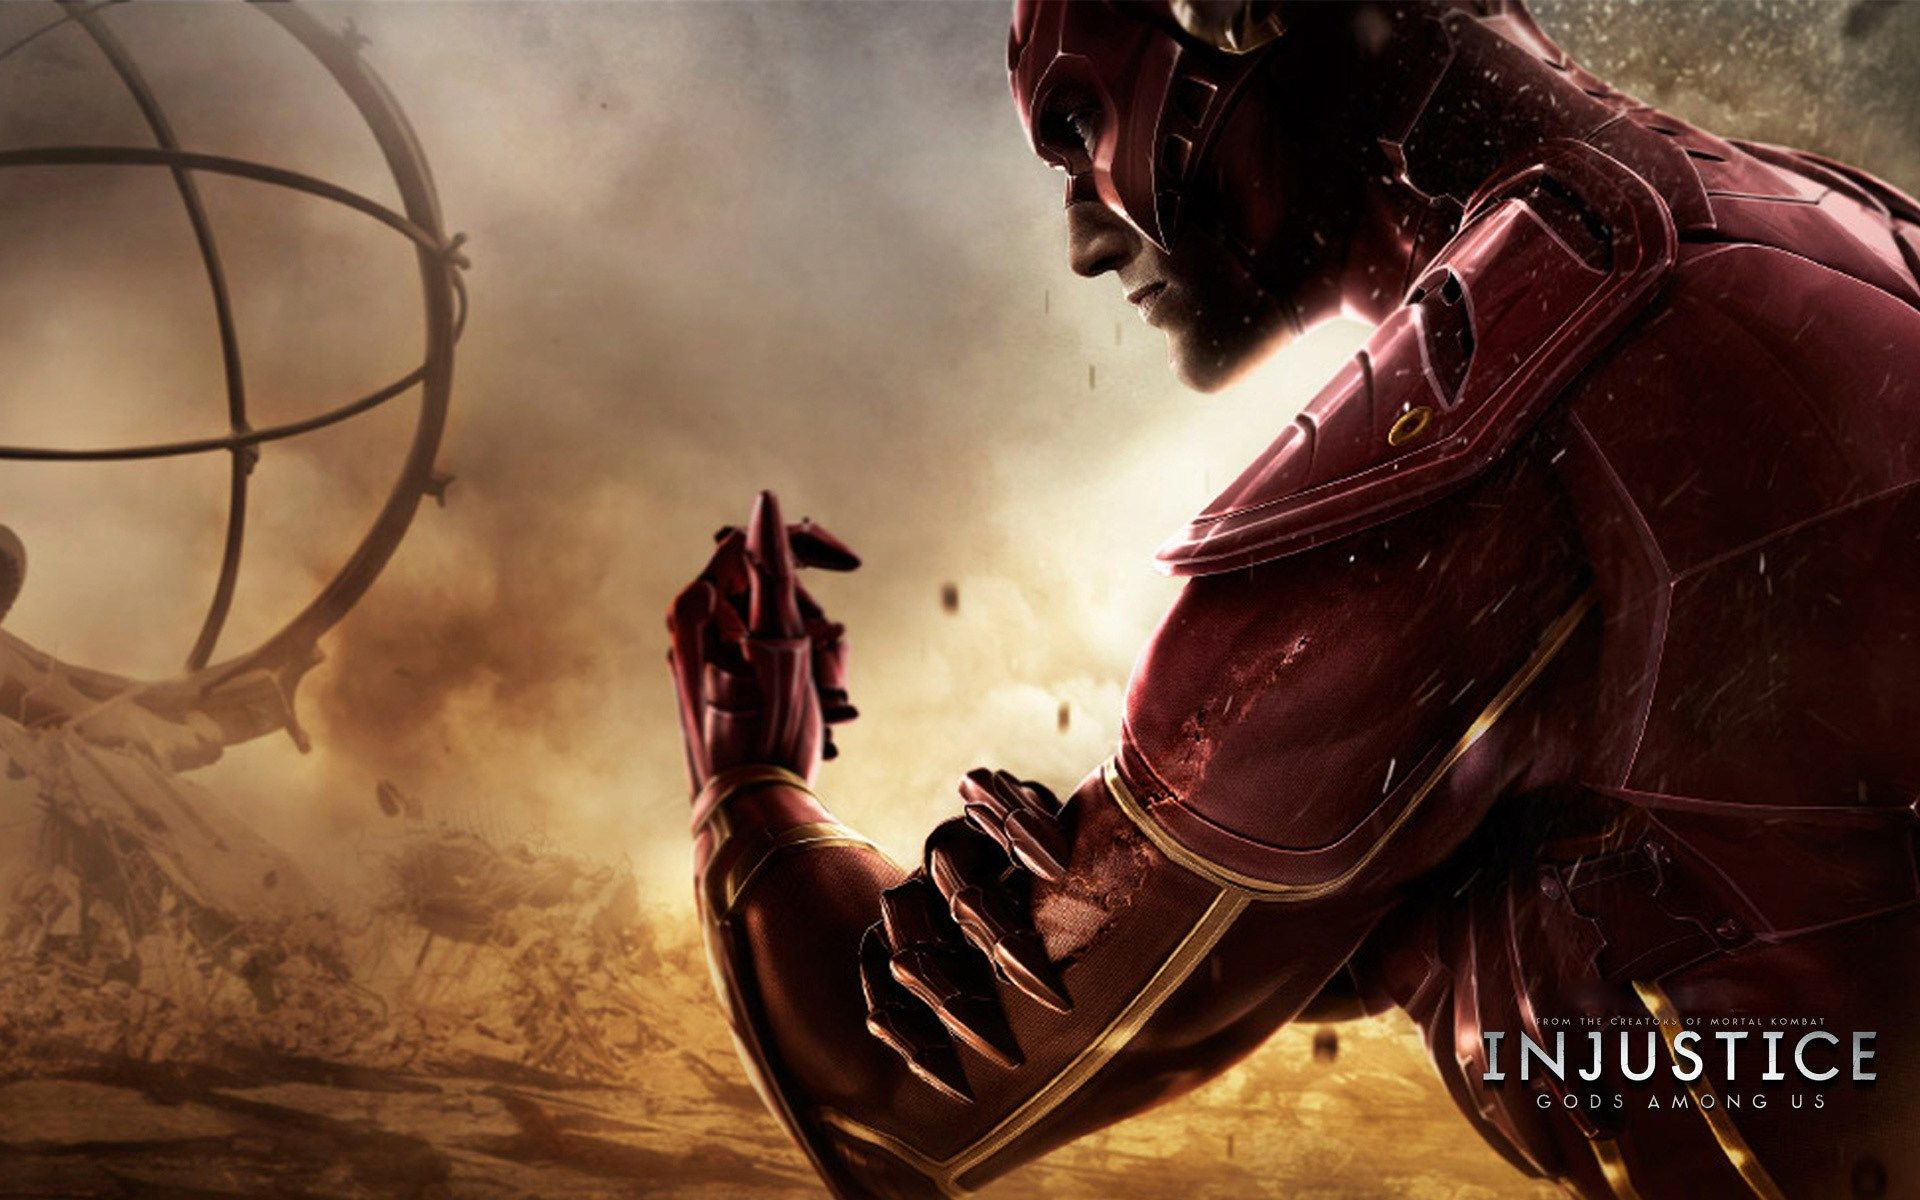 Free Download Pictures Of Injustice Gods Among Us Flash Characters Flash Wallpaper Injustice